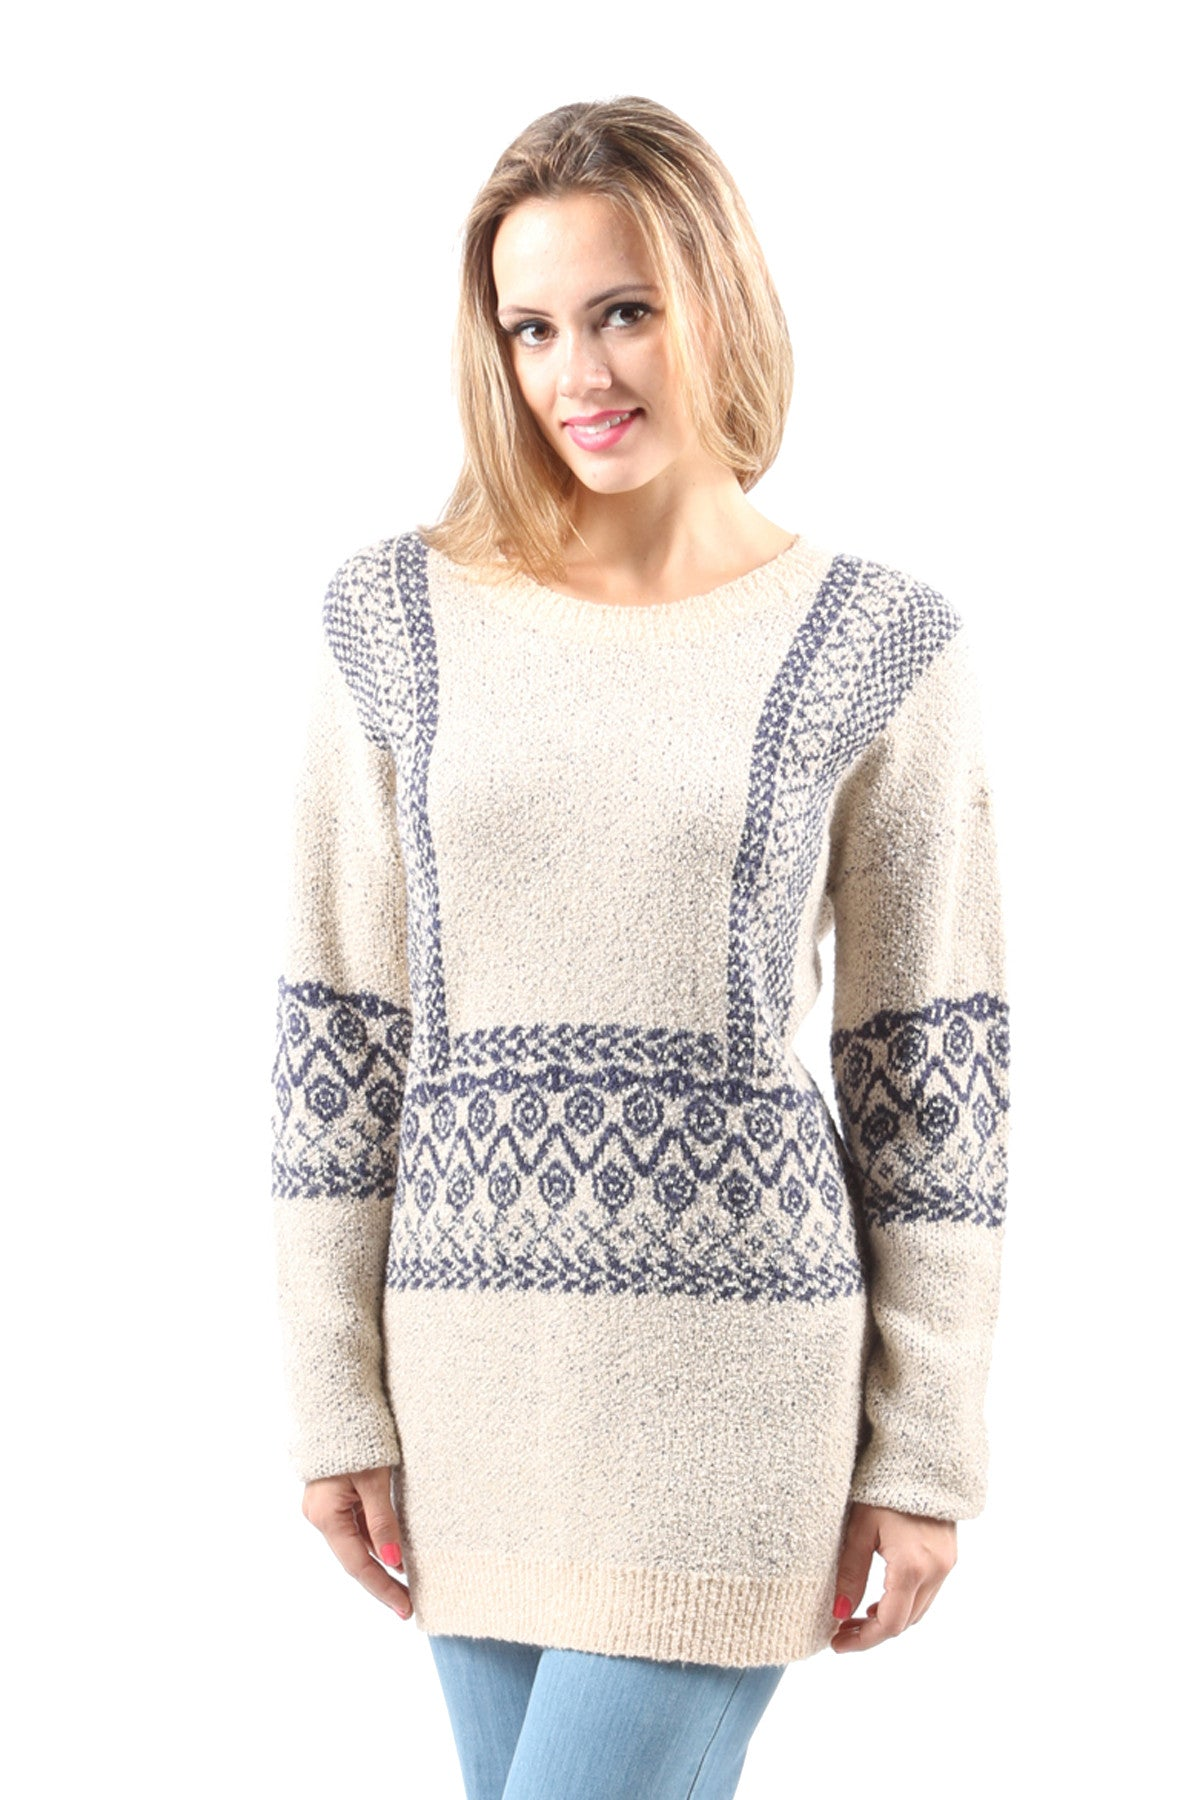 Knitted Chevron Sweater